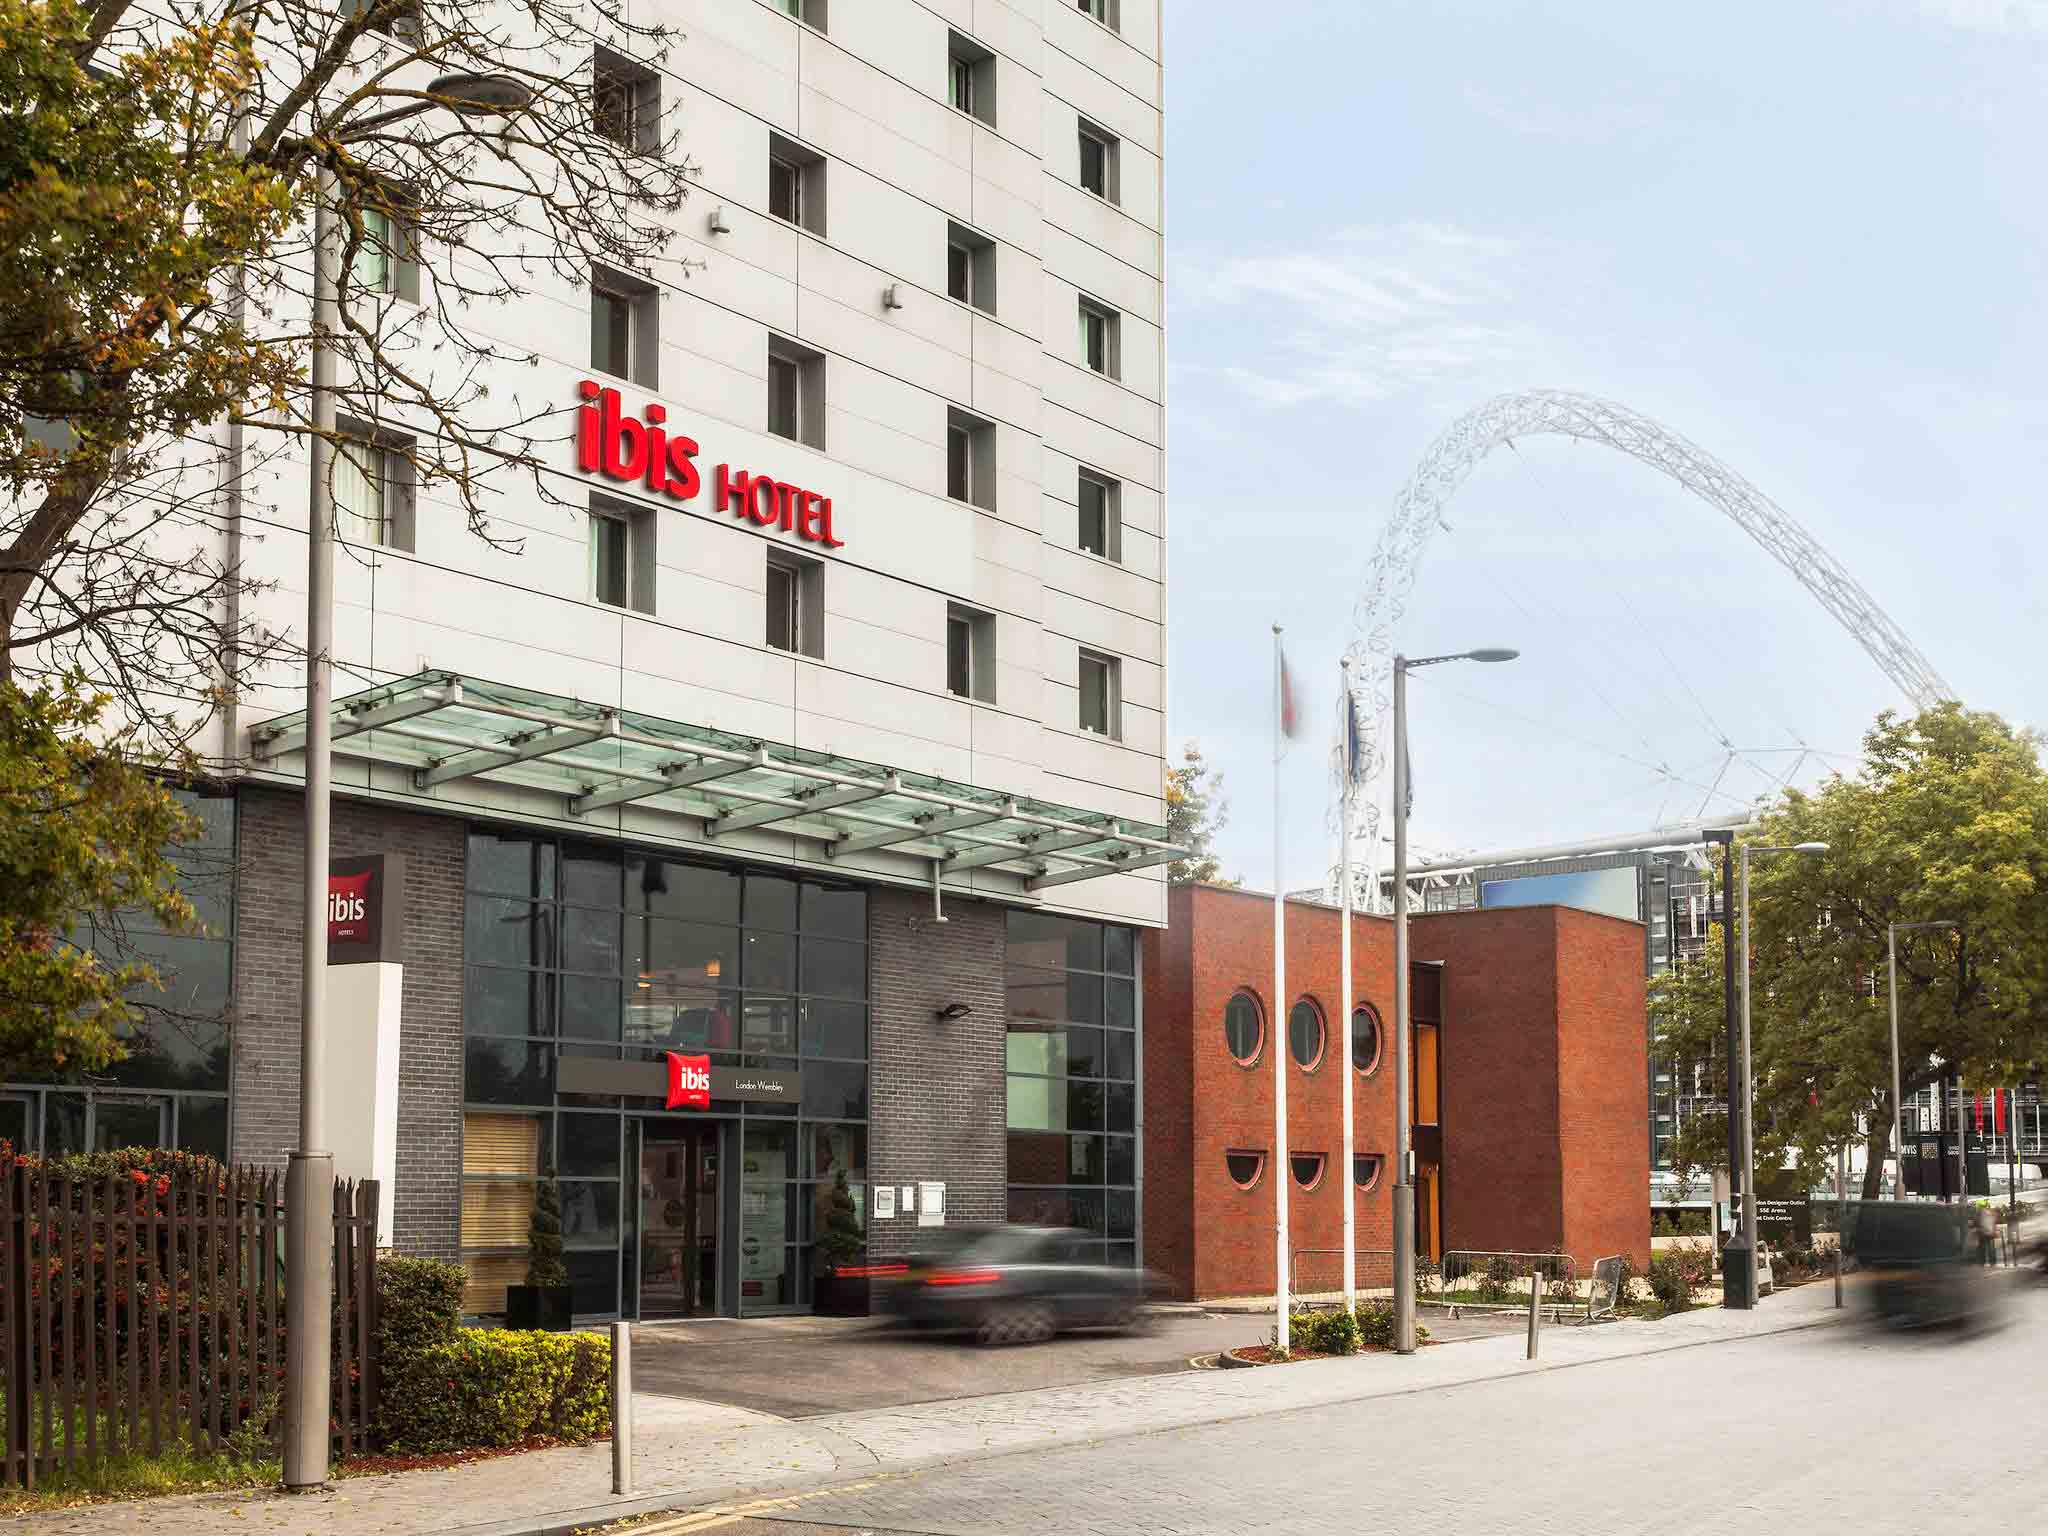 H tel londres ibis londres wembley for Hotel adagio londres